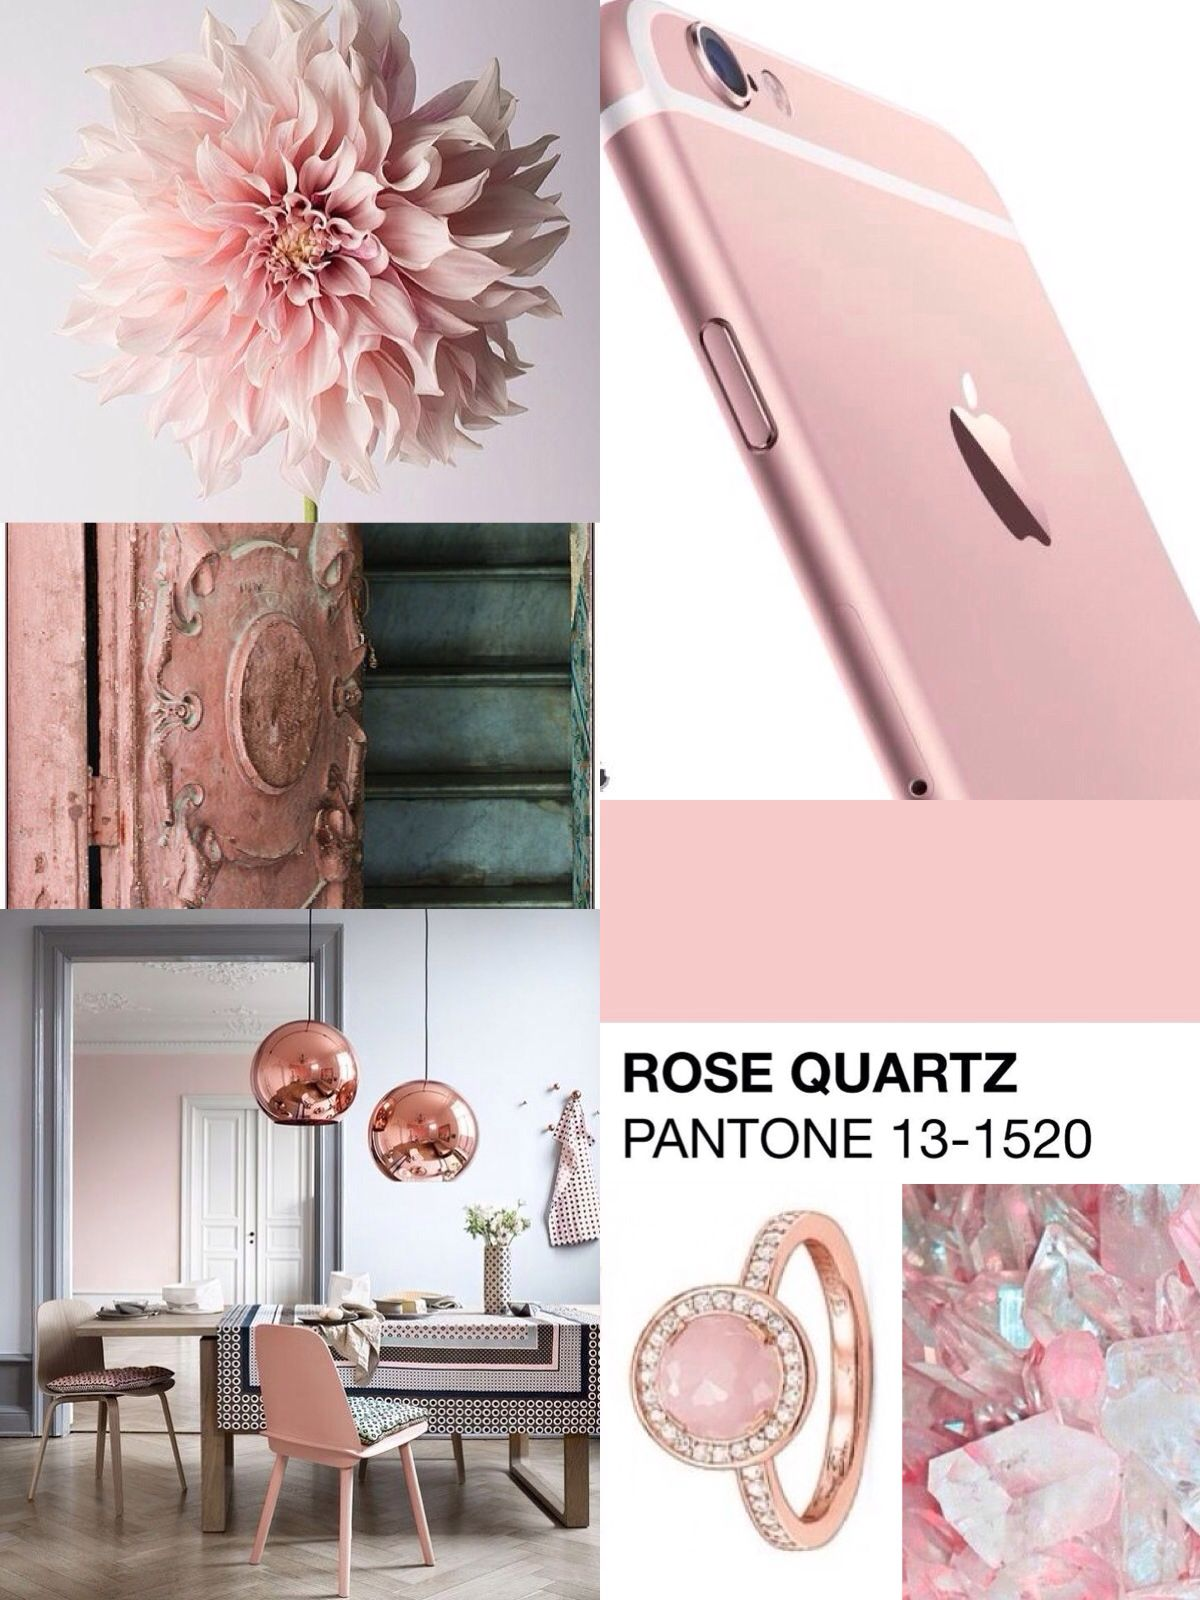 pantone spring 2016 rose quartz palette colors. Black Bedroom Furniture Sets. Home Design Ideas